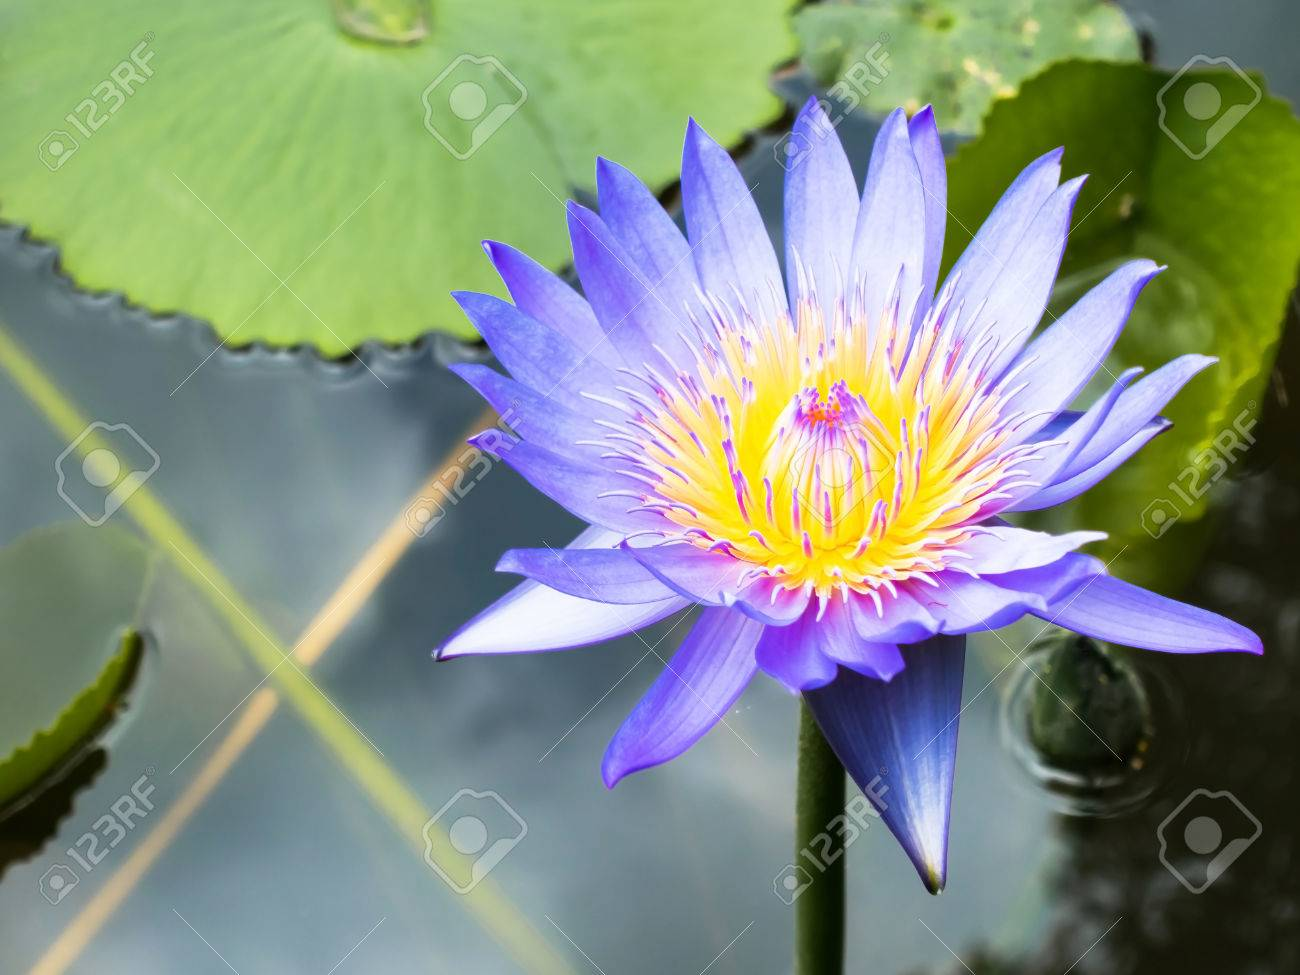 Lotus Is Water Lily That Can Use For Alternative Medicine And